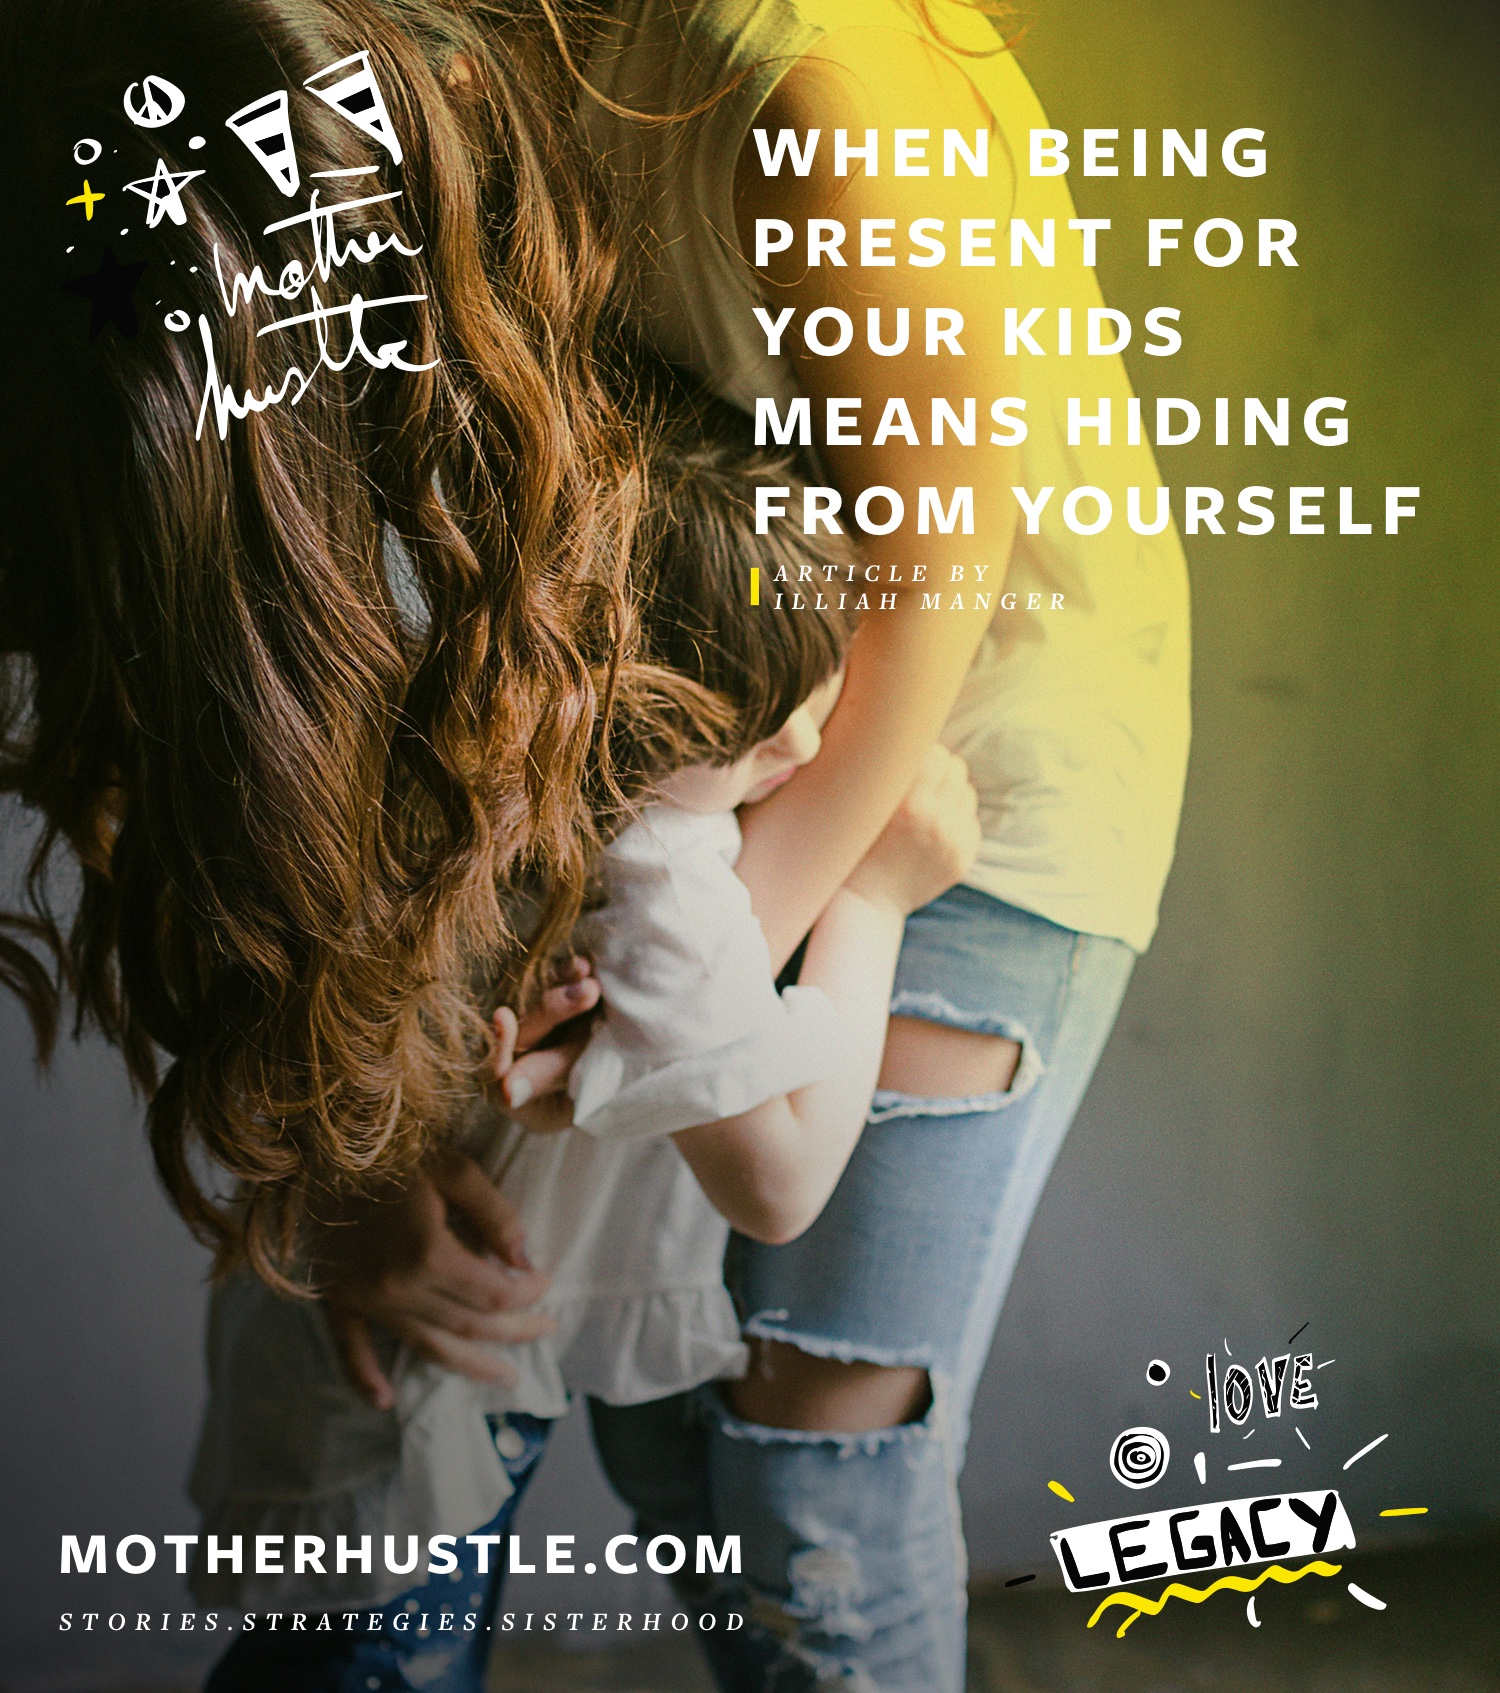 When Being Present For Your Kids Means Hiding From Yourself - by Illiah Manger for MotherHustle